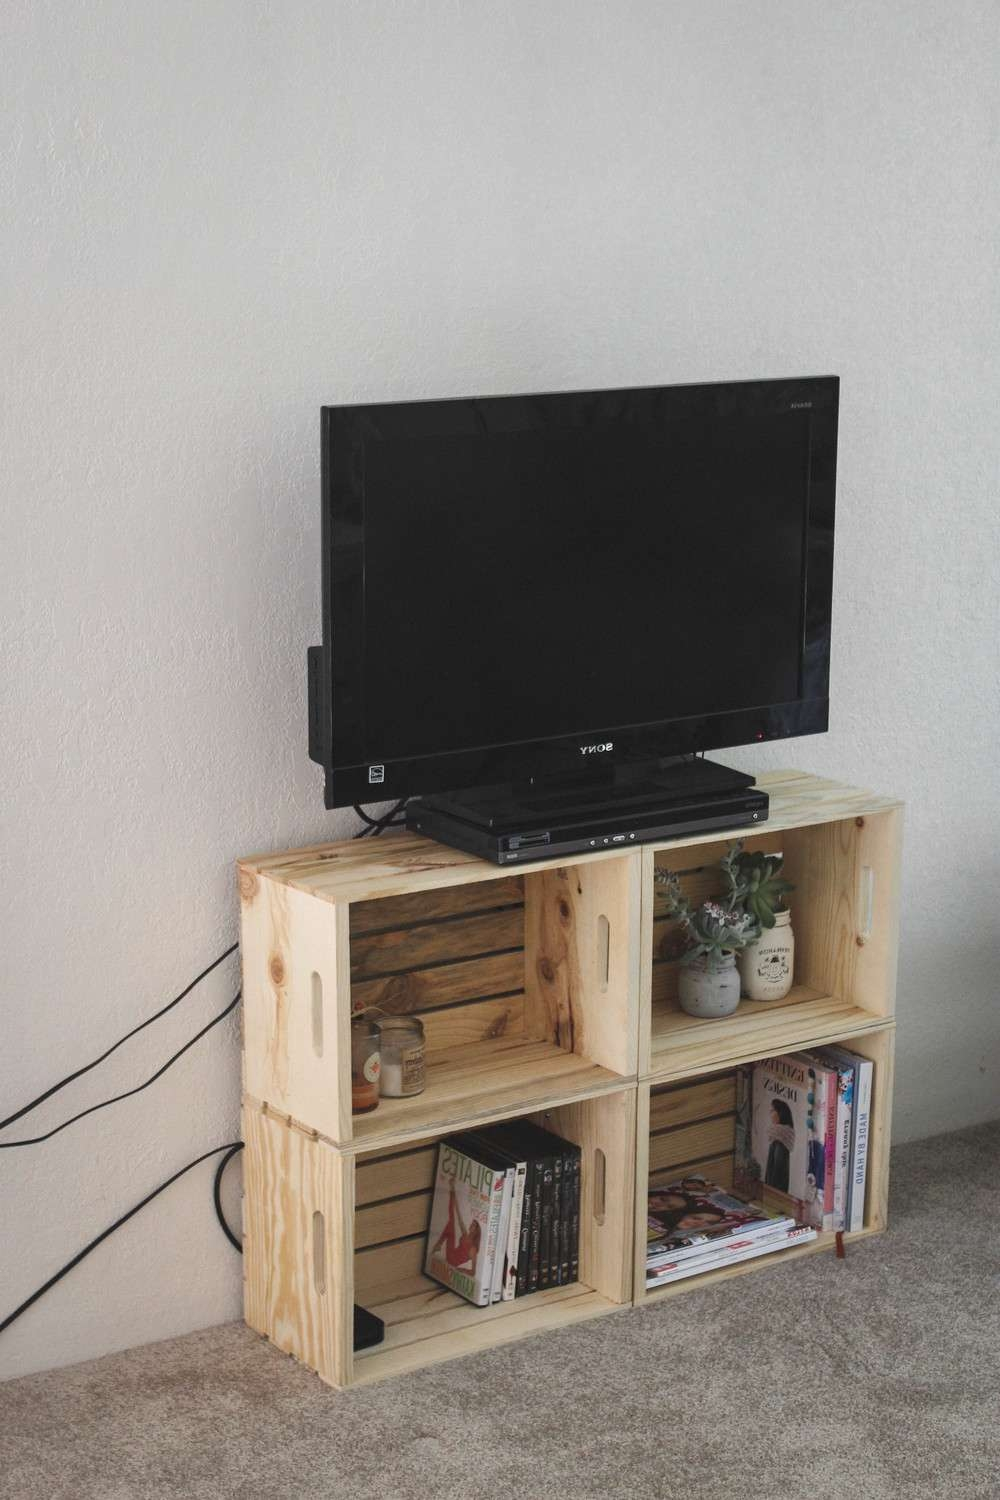 15 Best Collection Of Wooden Tv Stands With Wheels